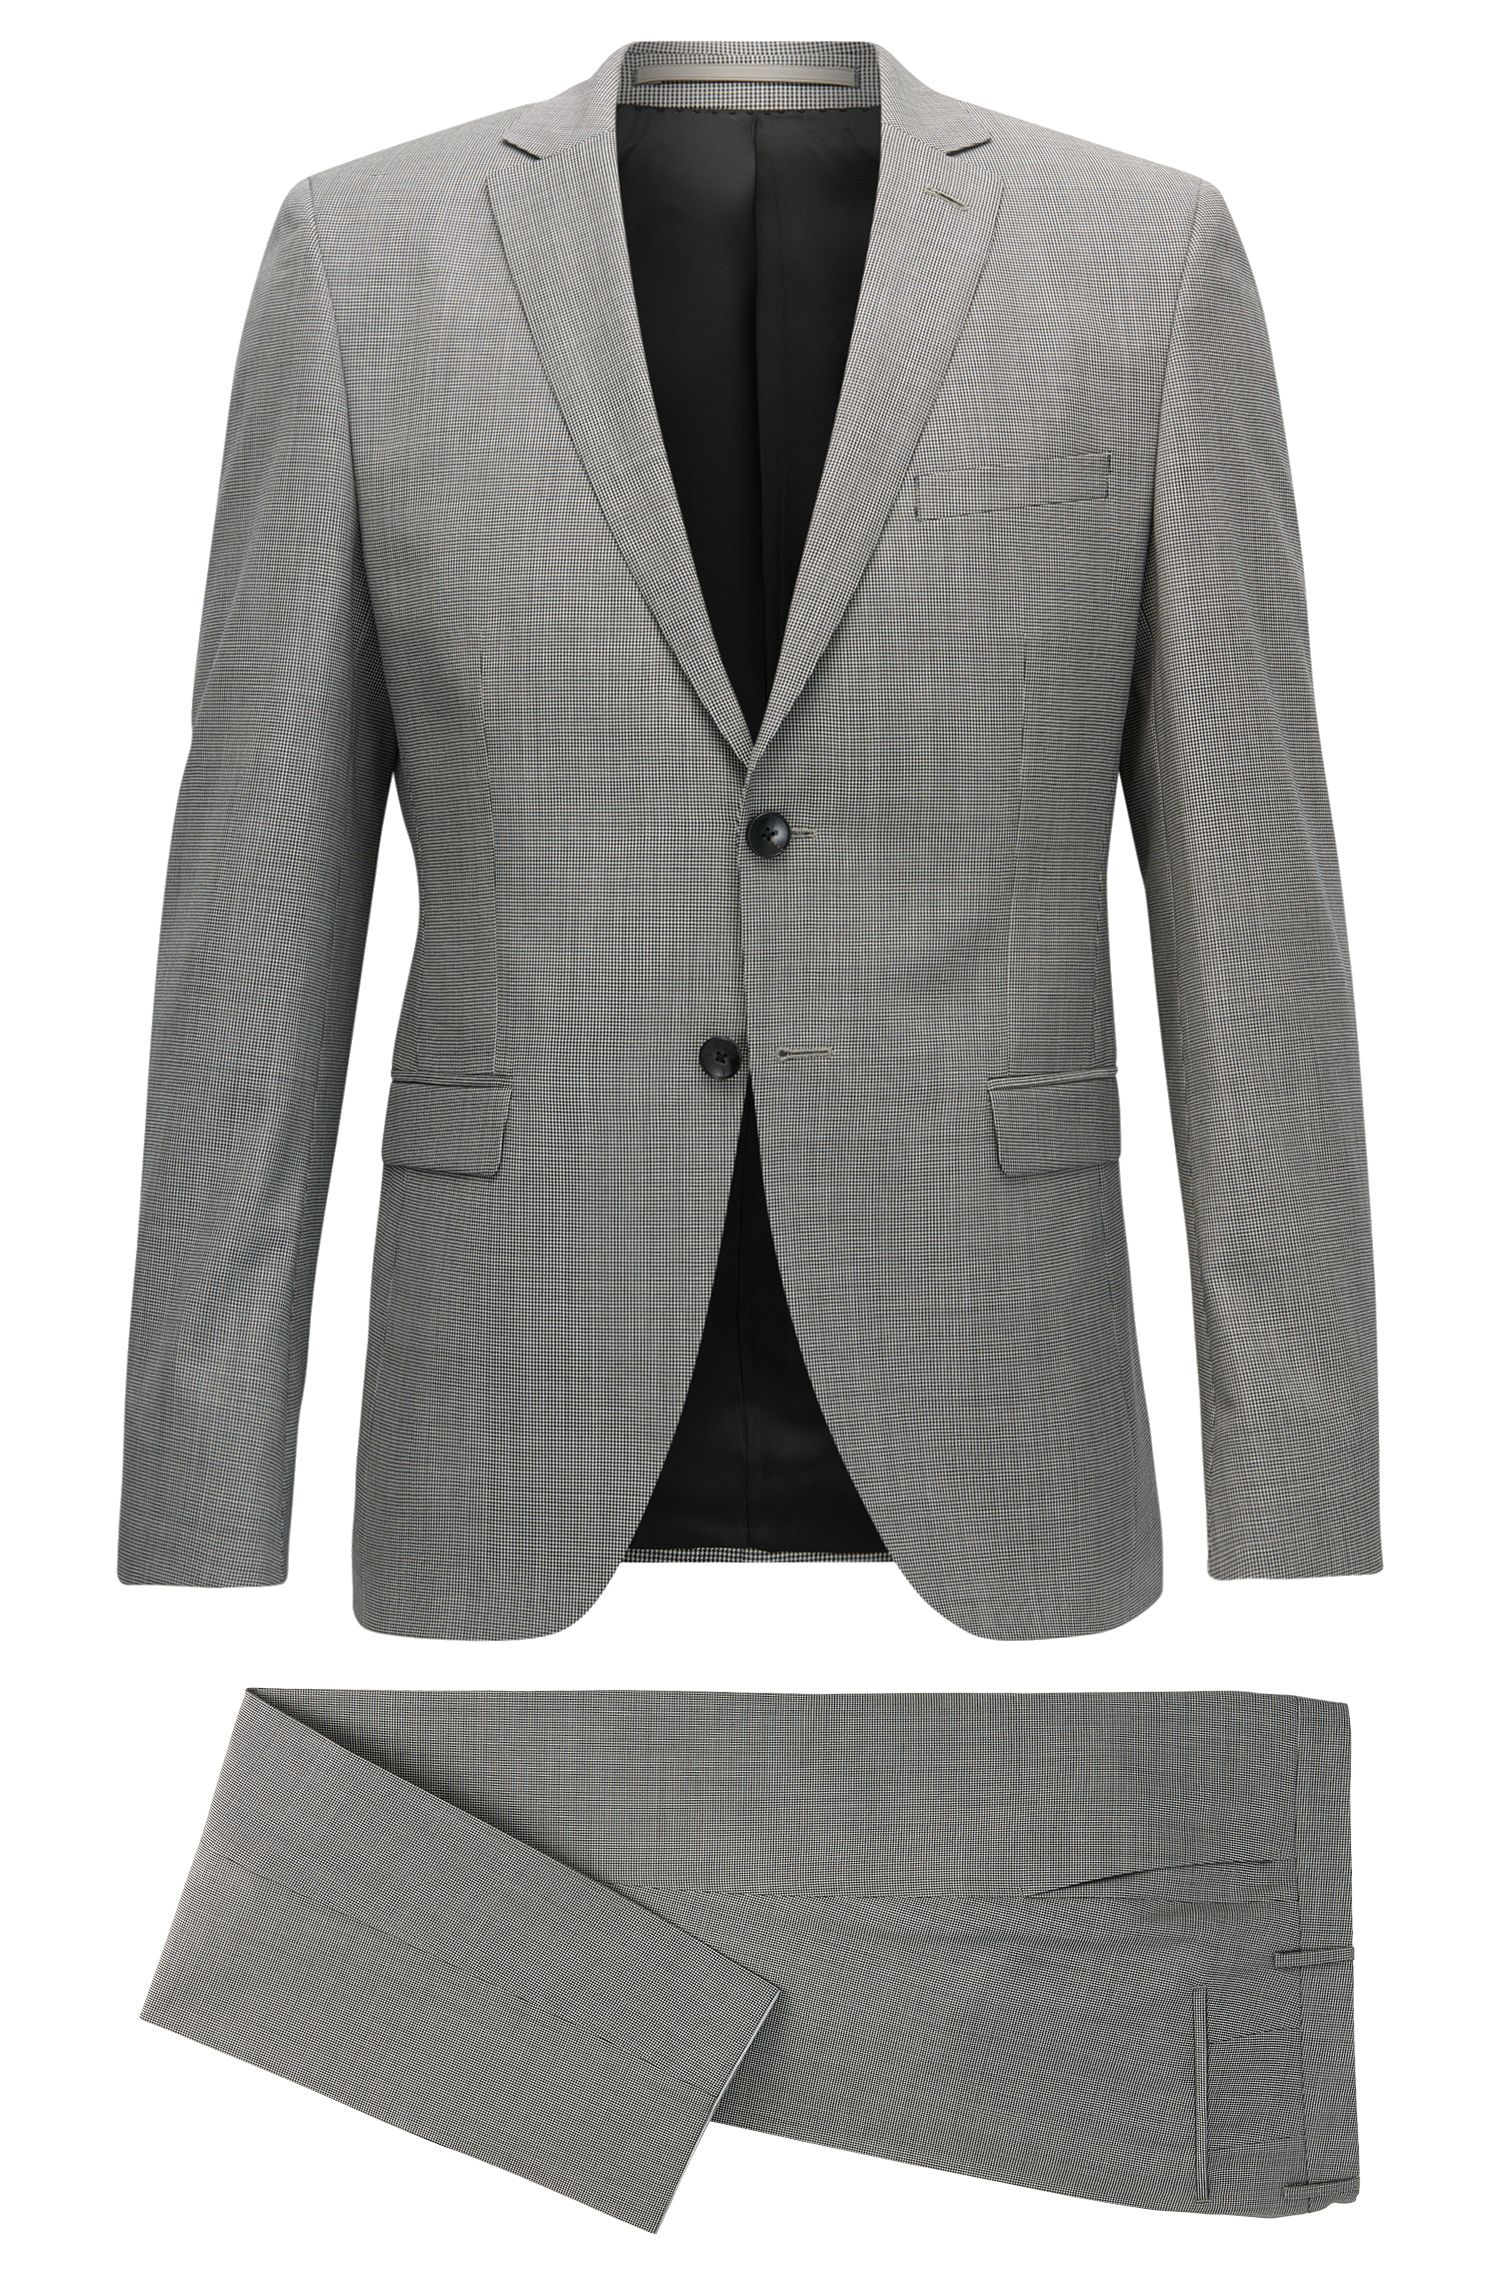 Puppytooth Virgin Wool Suit, Slim Fit | Reymond/Wenton